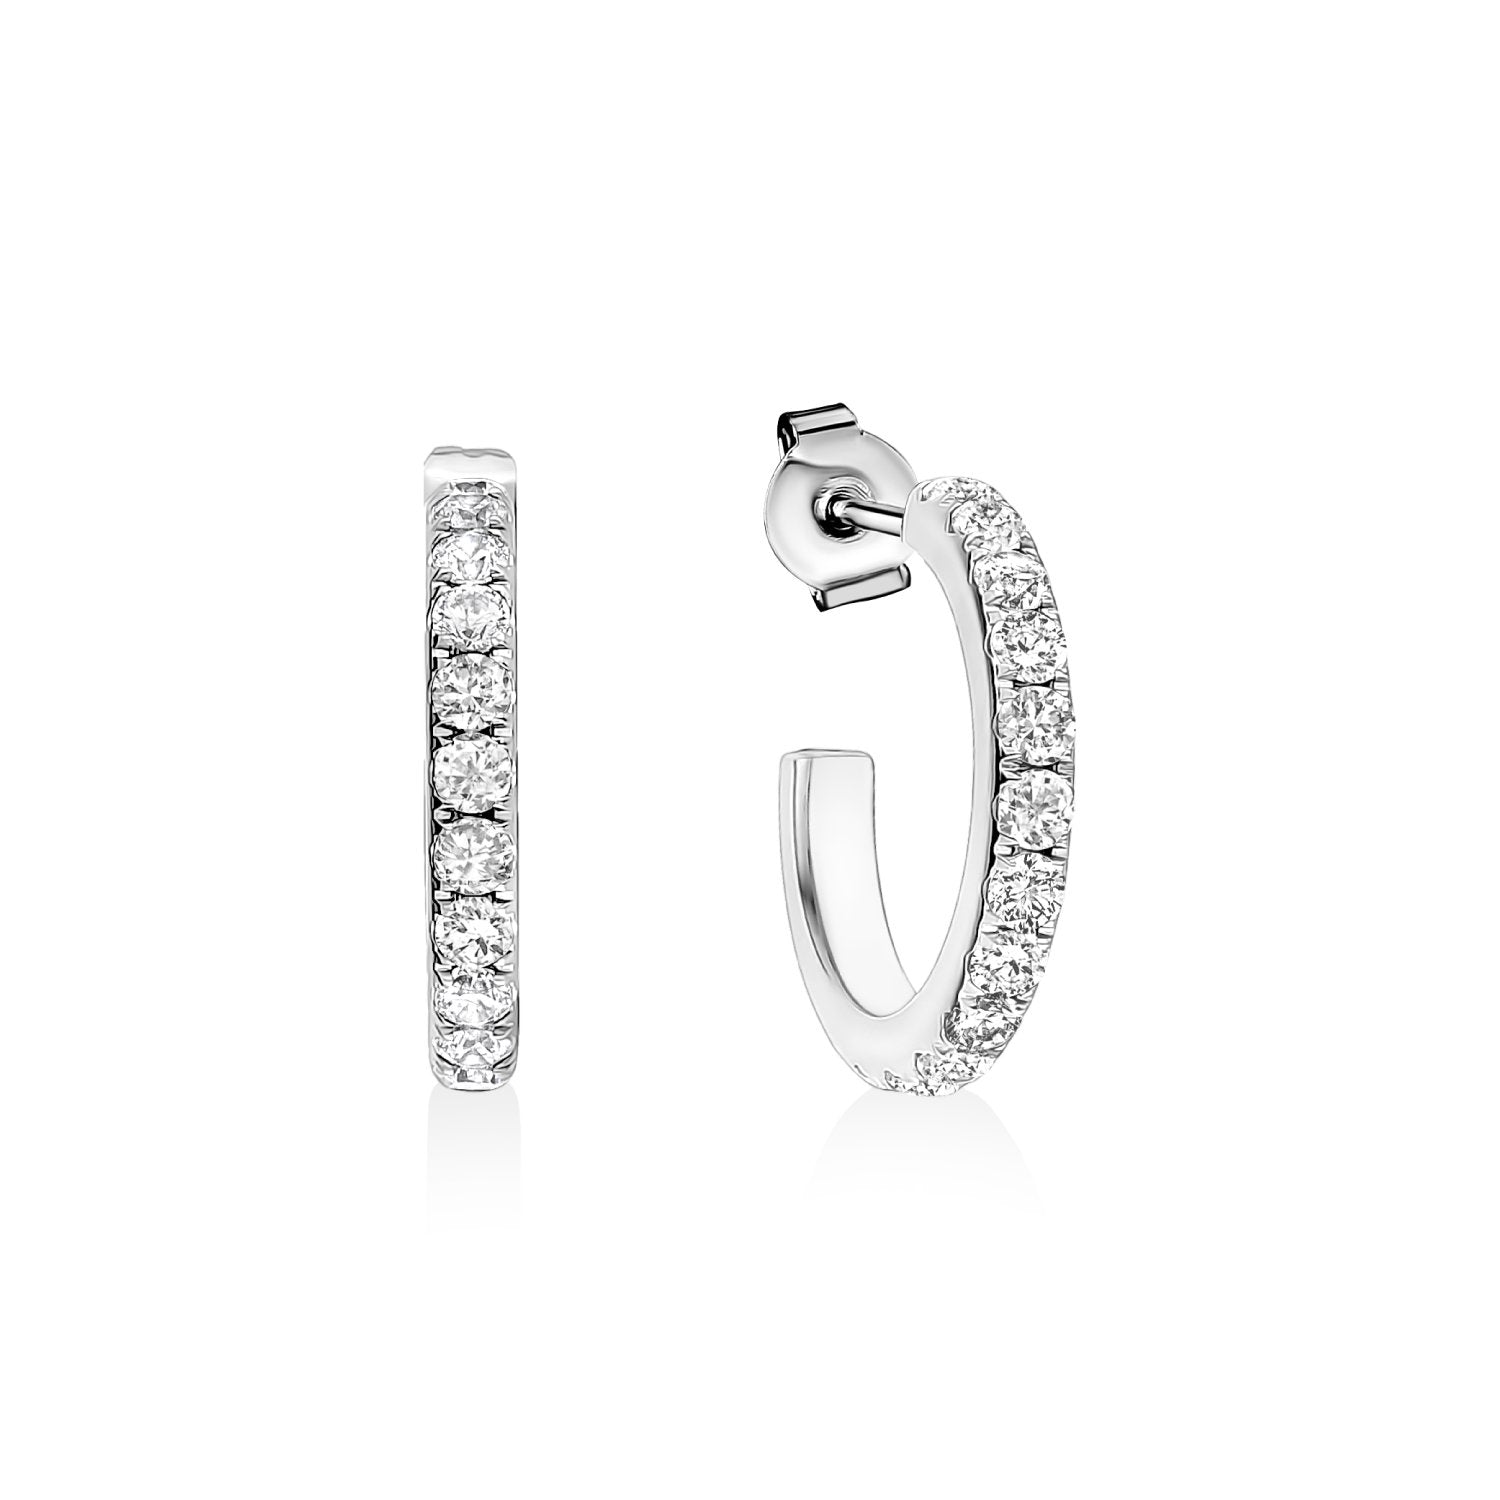 Earrings - 20mm Cubic Zircon Steel Hoop Earrings